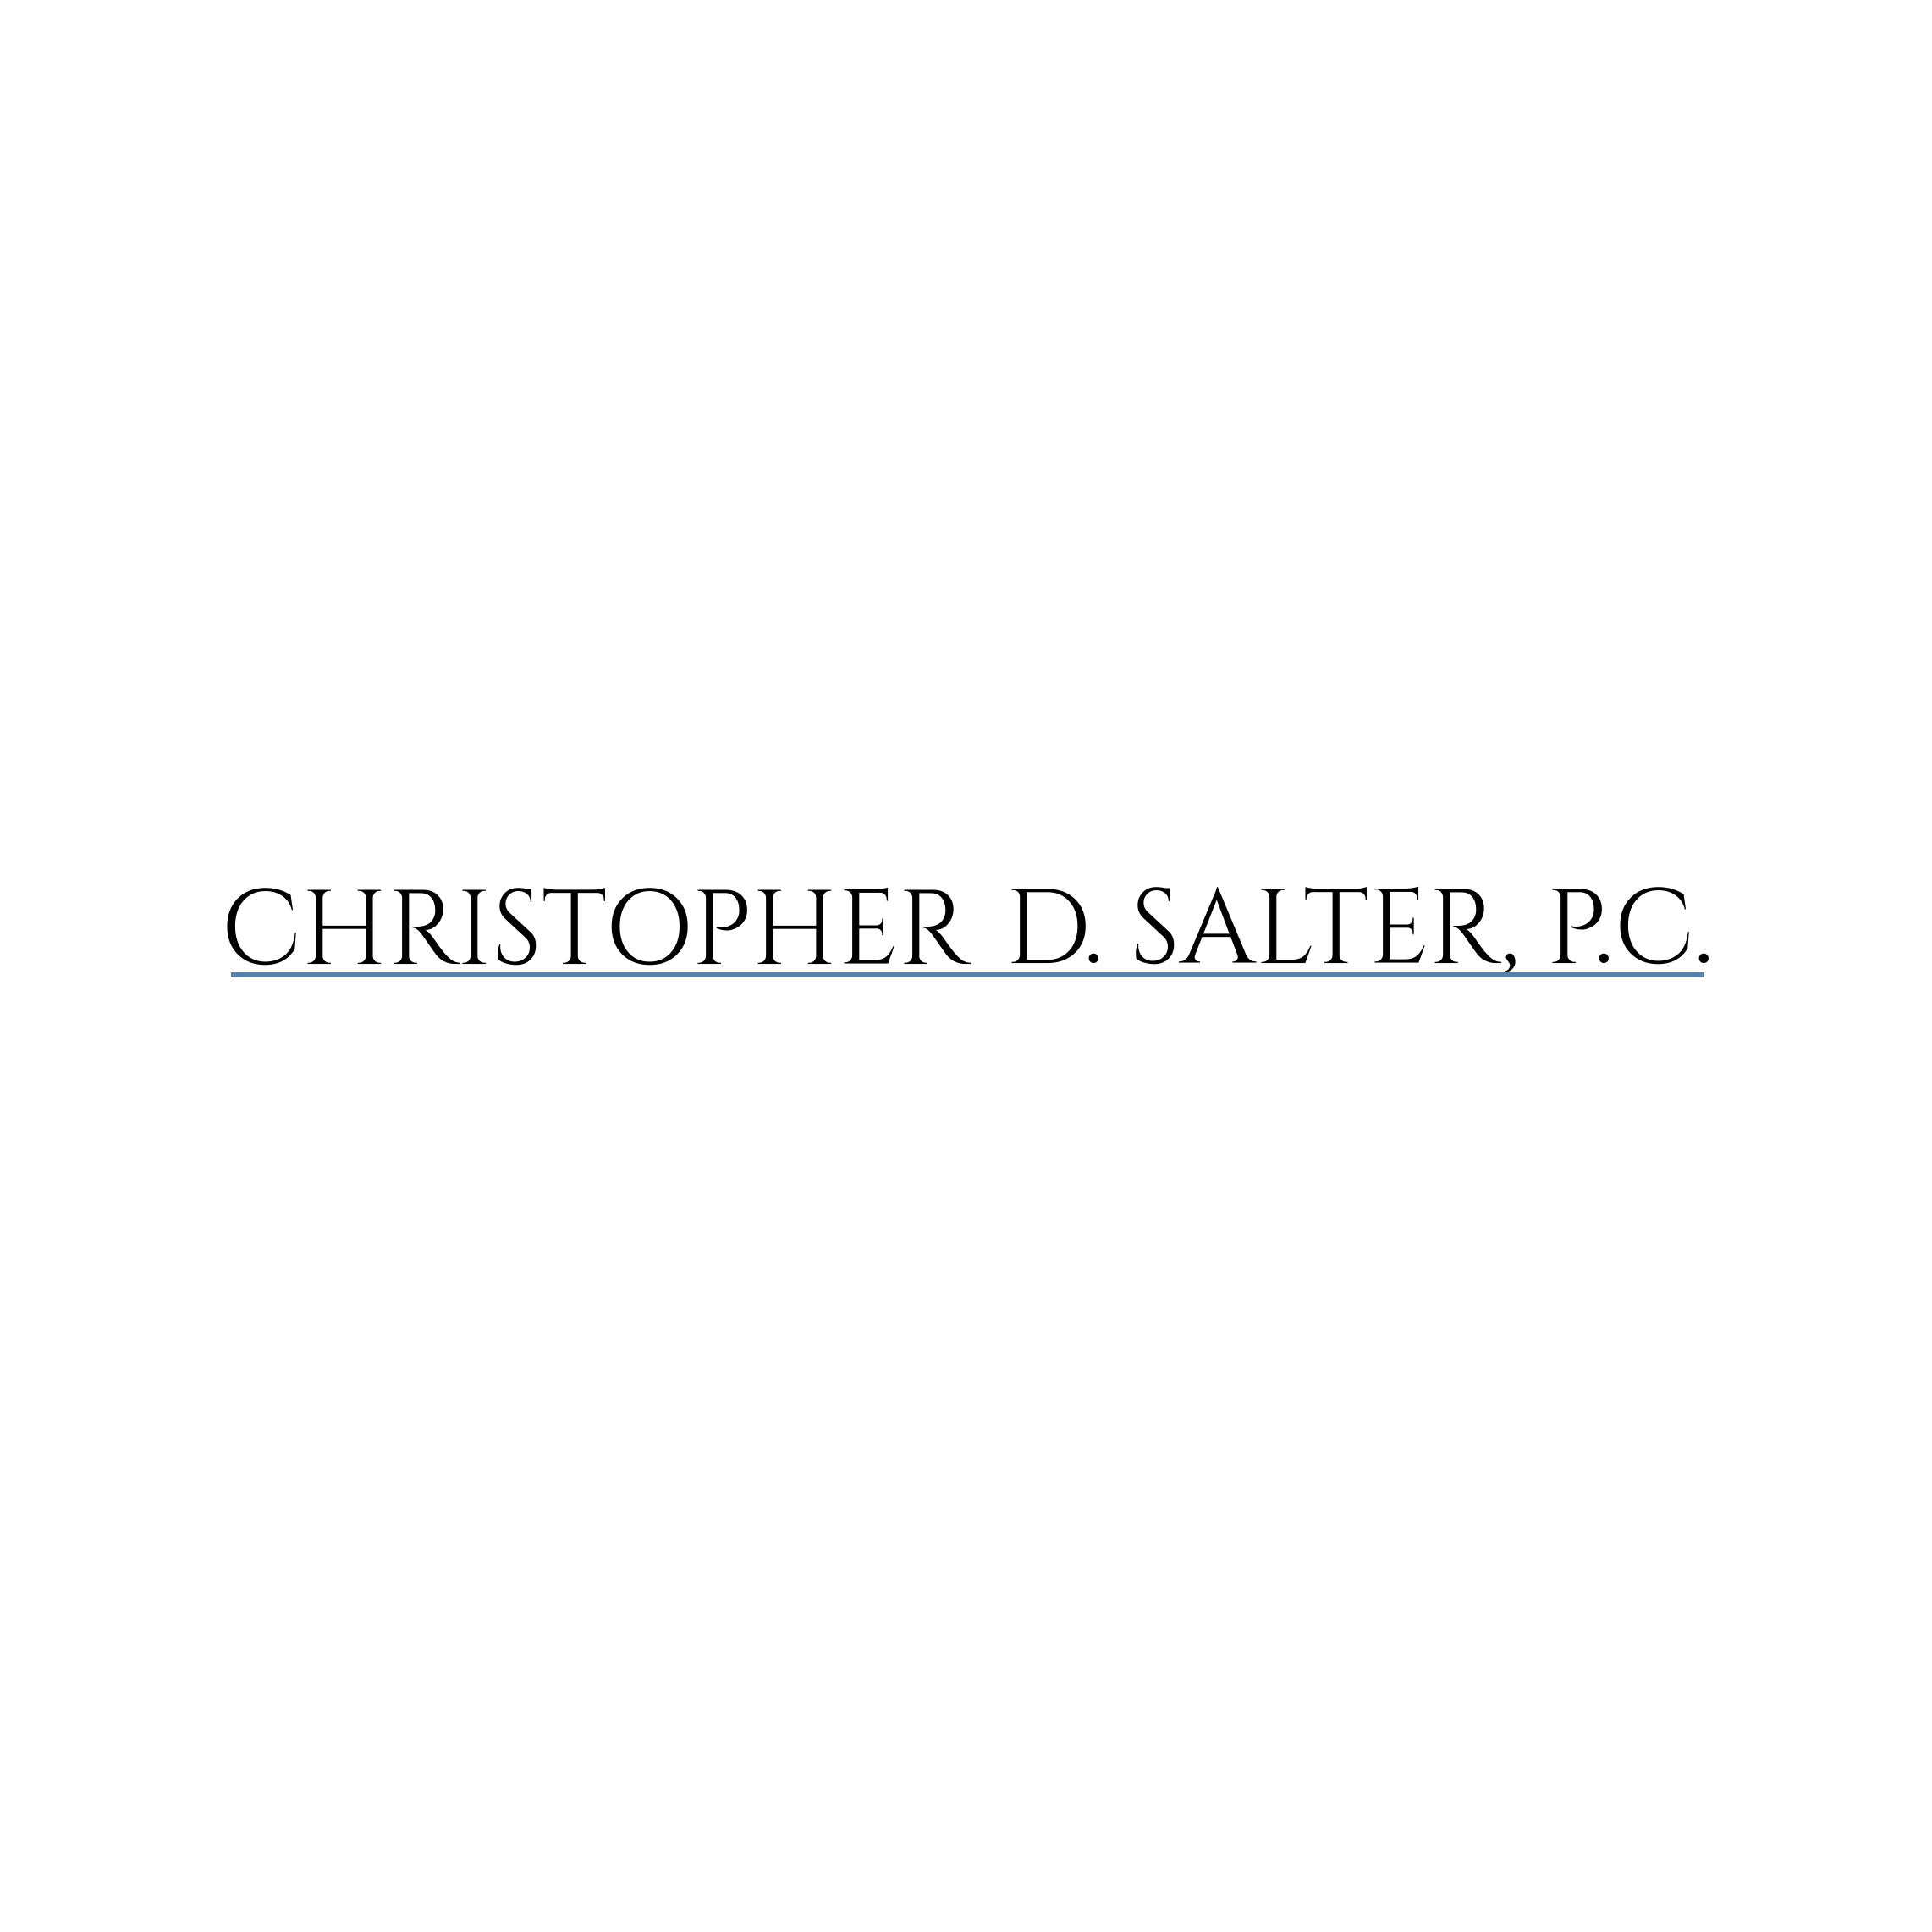 Christopher D. Salter, P.C